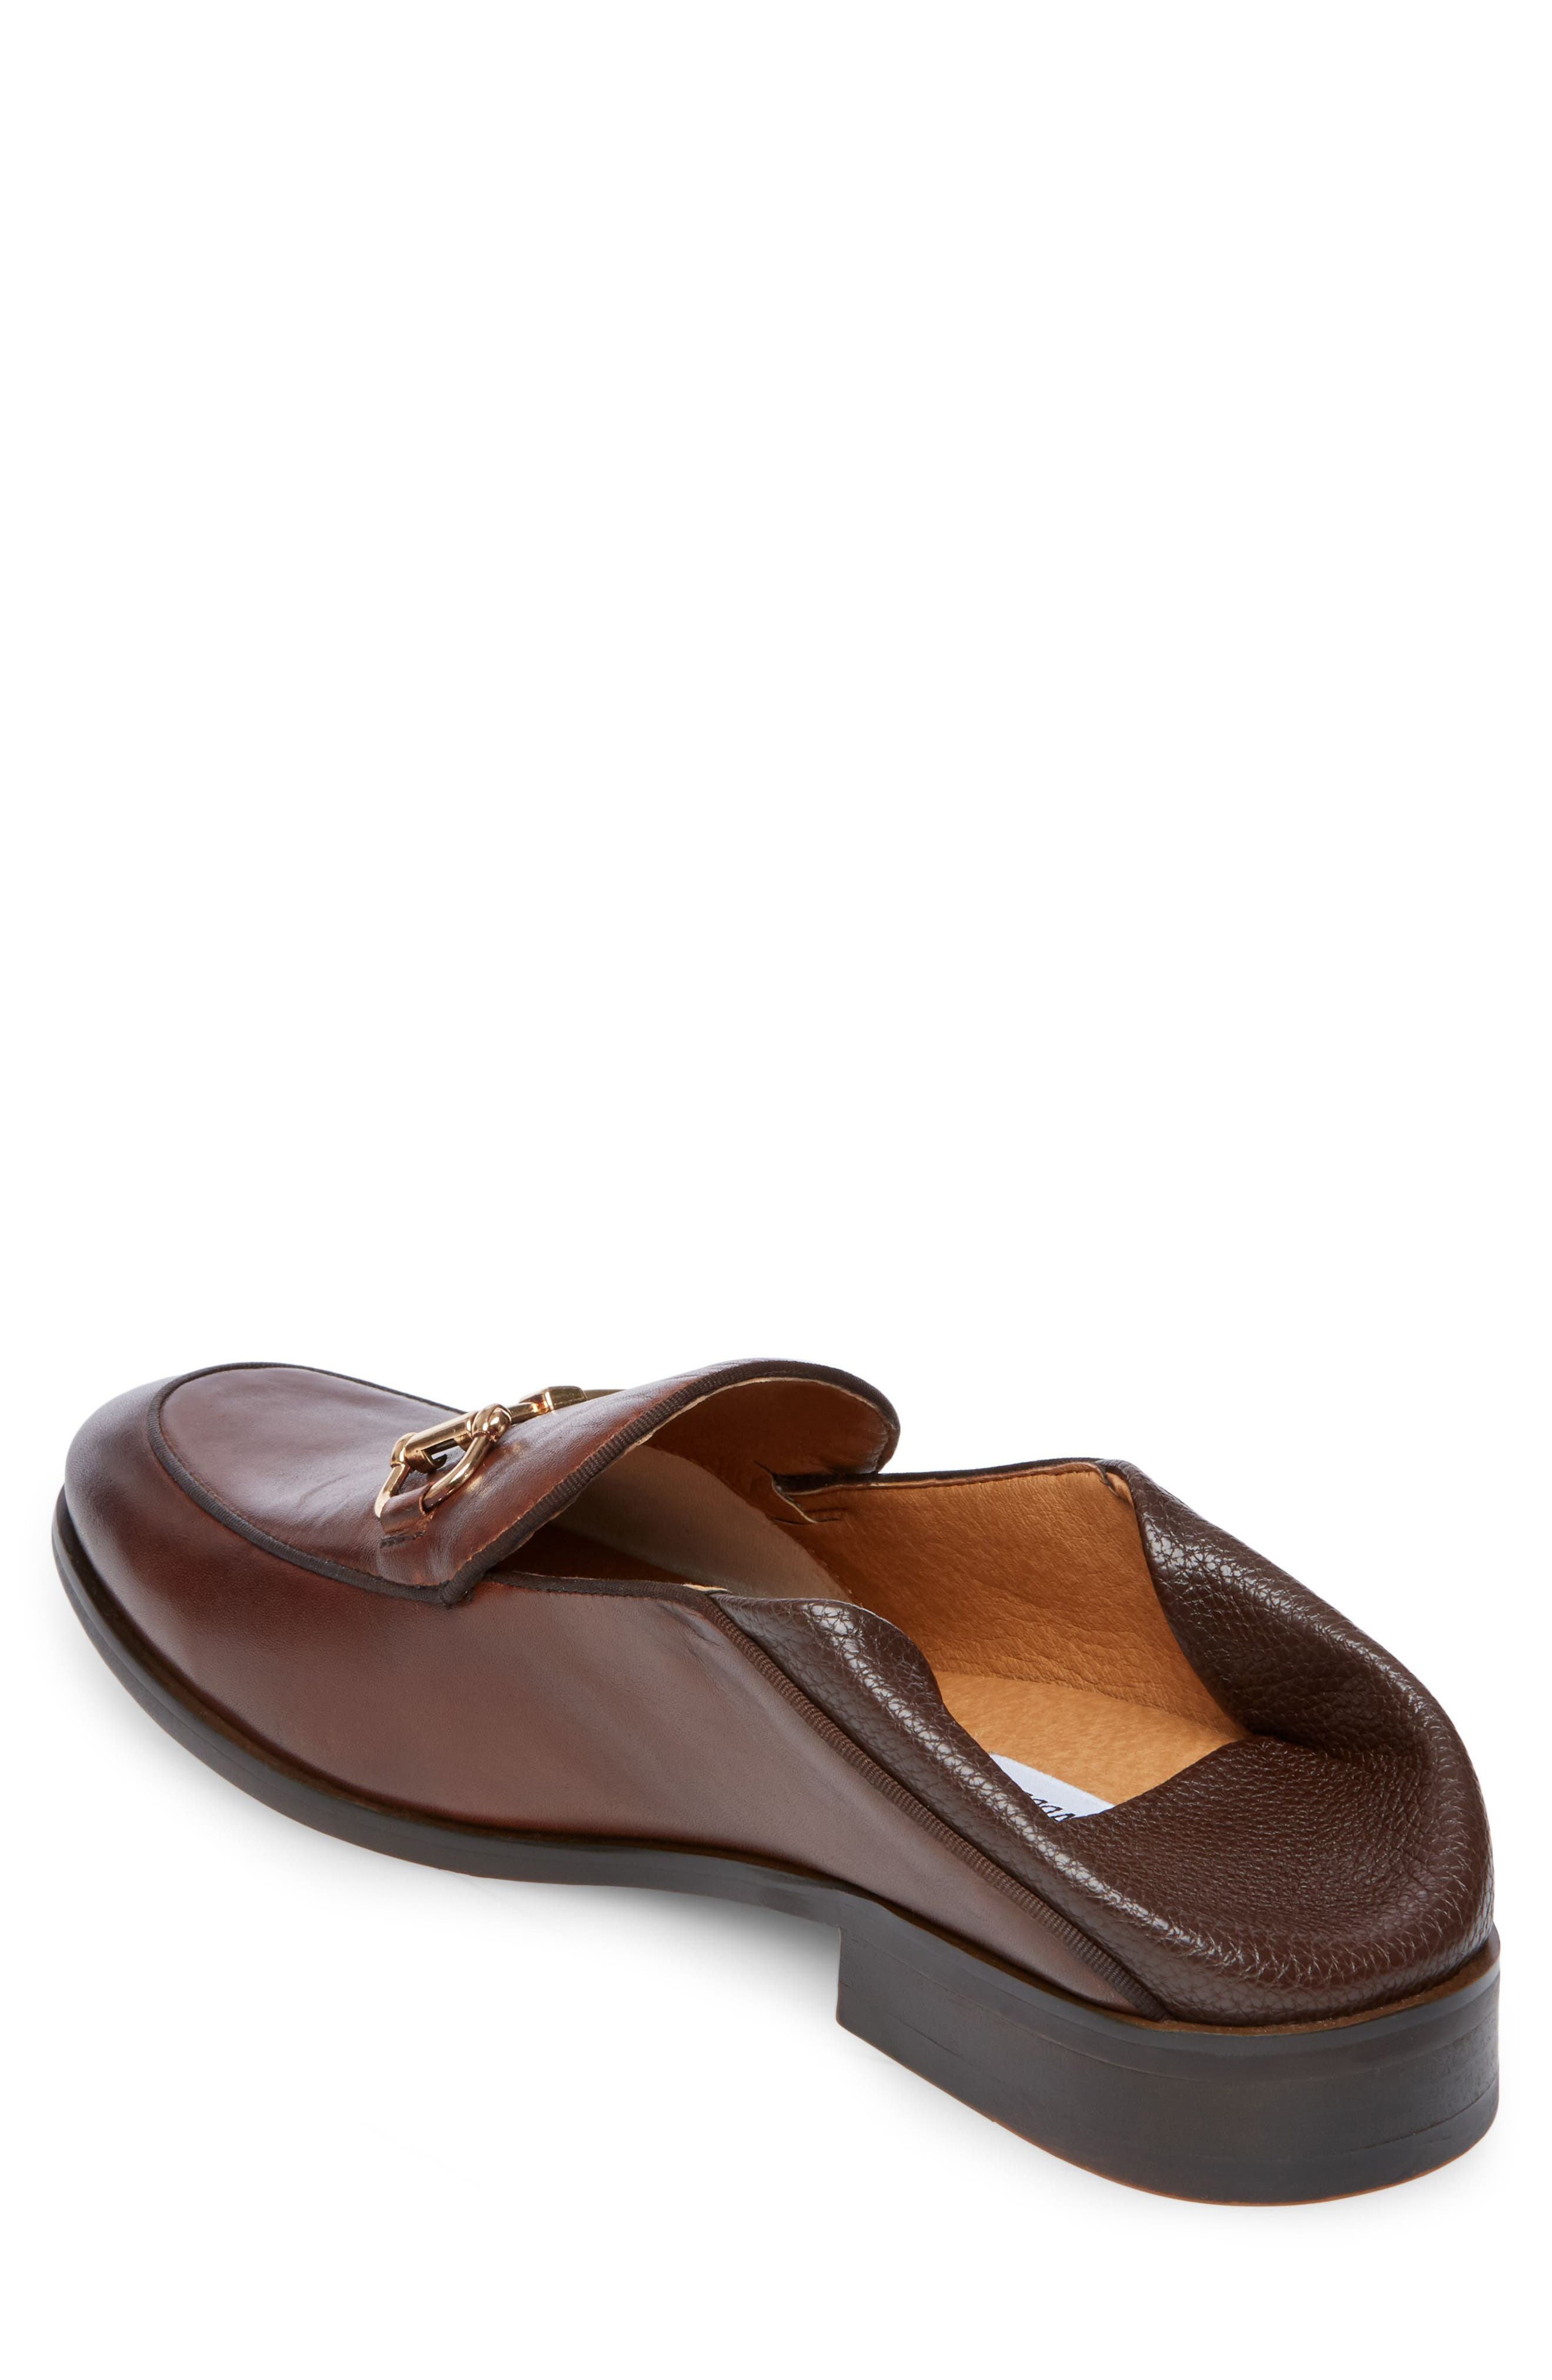 Sauce Bit Collapsible Loafer,                             Alternate thumbnail 4, color,